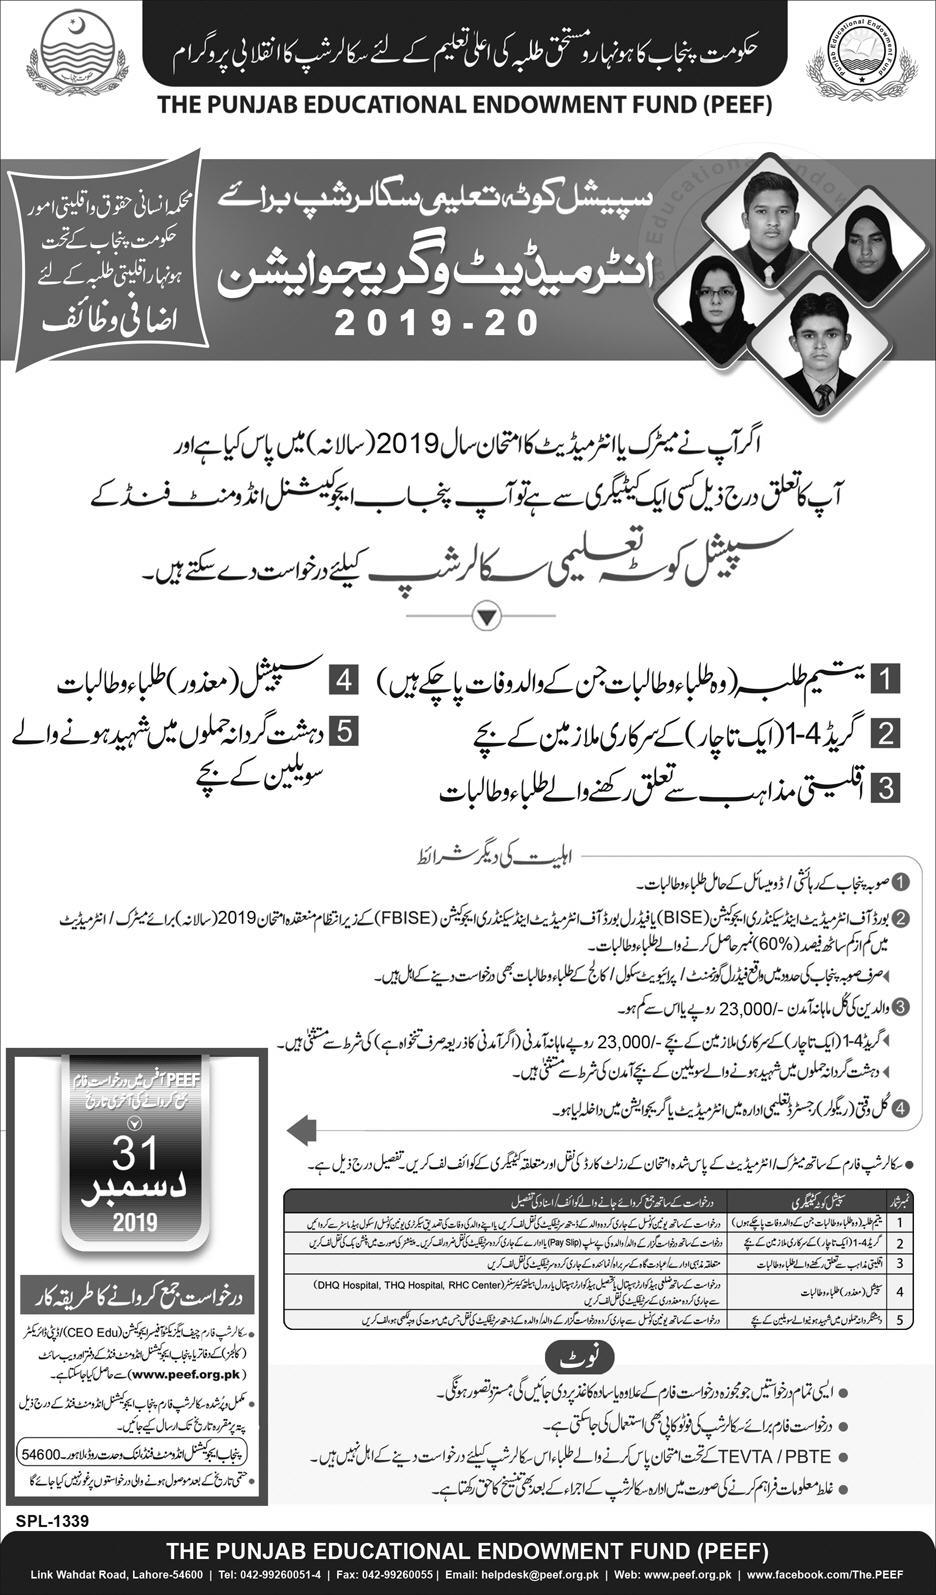 PEEF Special Quota Scholarship advertisement